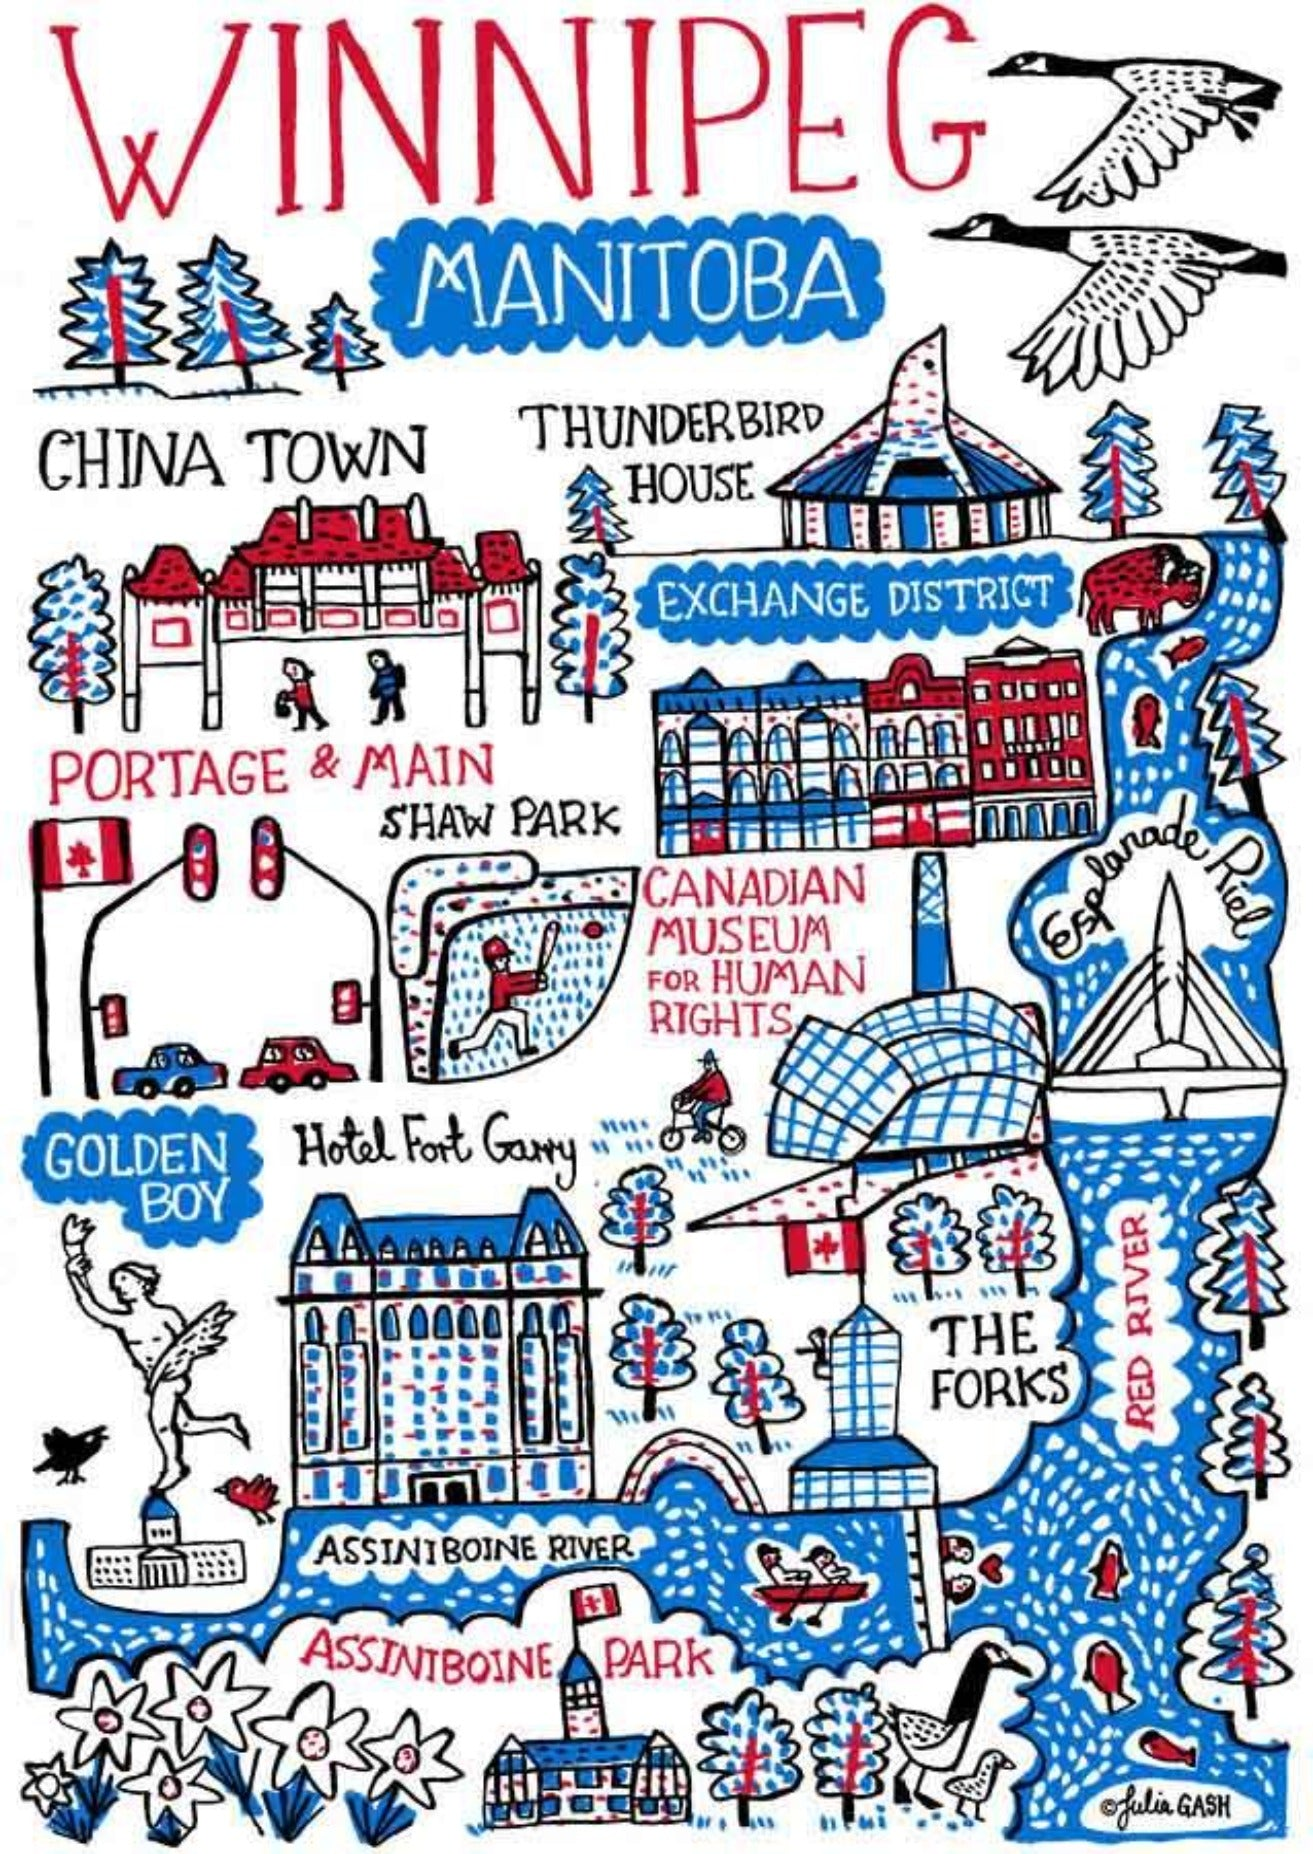 Winnipeg Art Print - Julia Gash